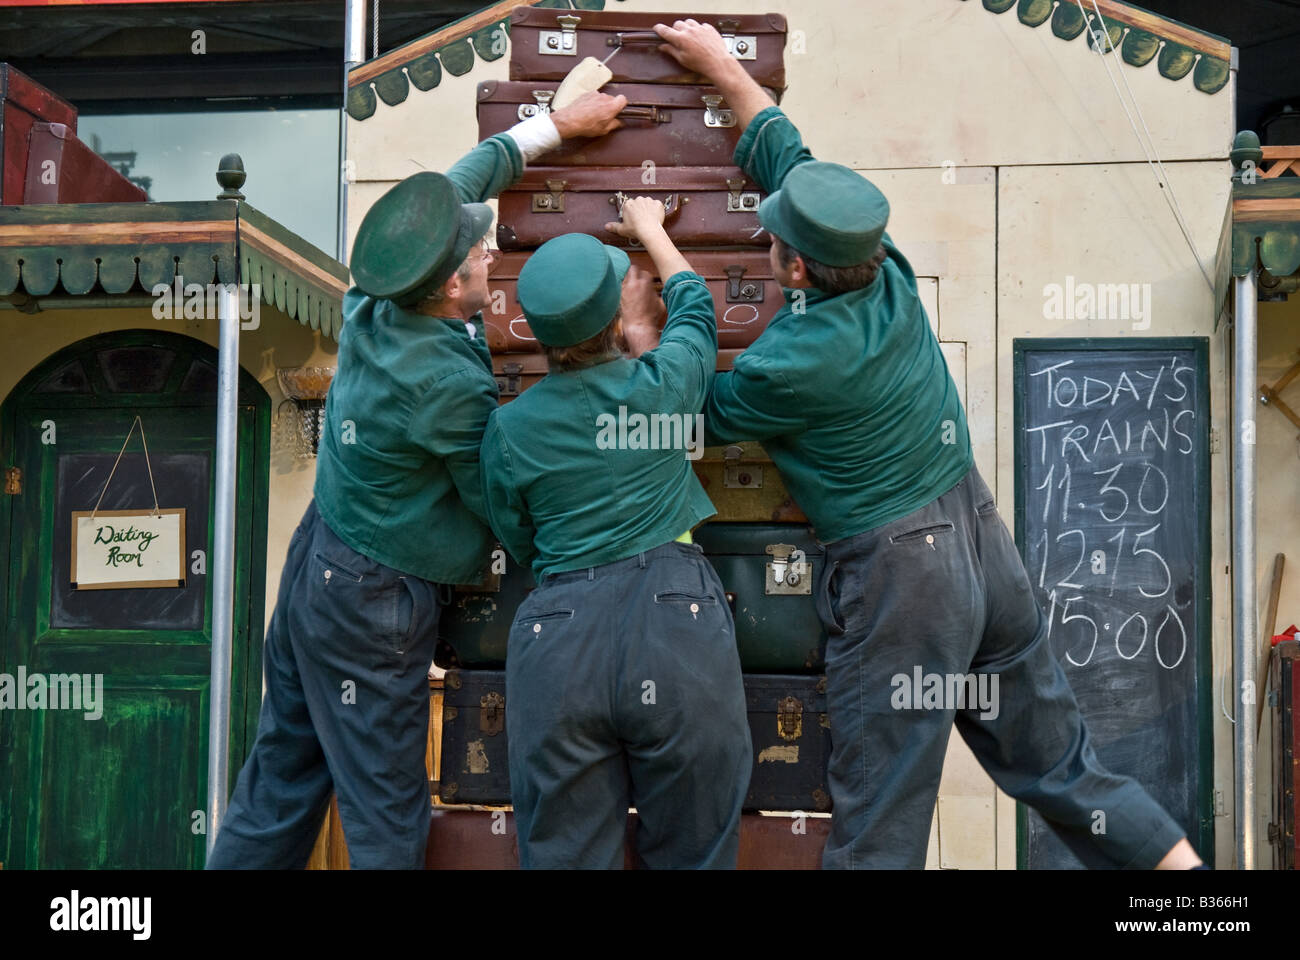 THREE TRAIN WORKERS TRYING TO ORGANIZE THE PASSENGER LUGGAGE IN A BUNGLING WAY - Stock Image